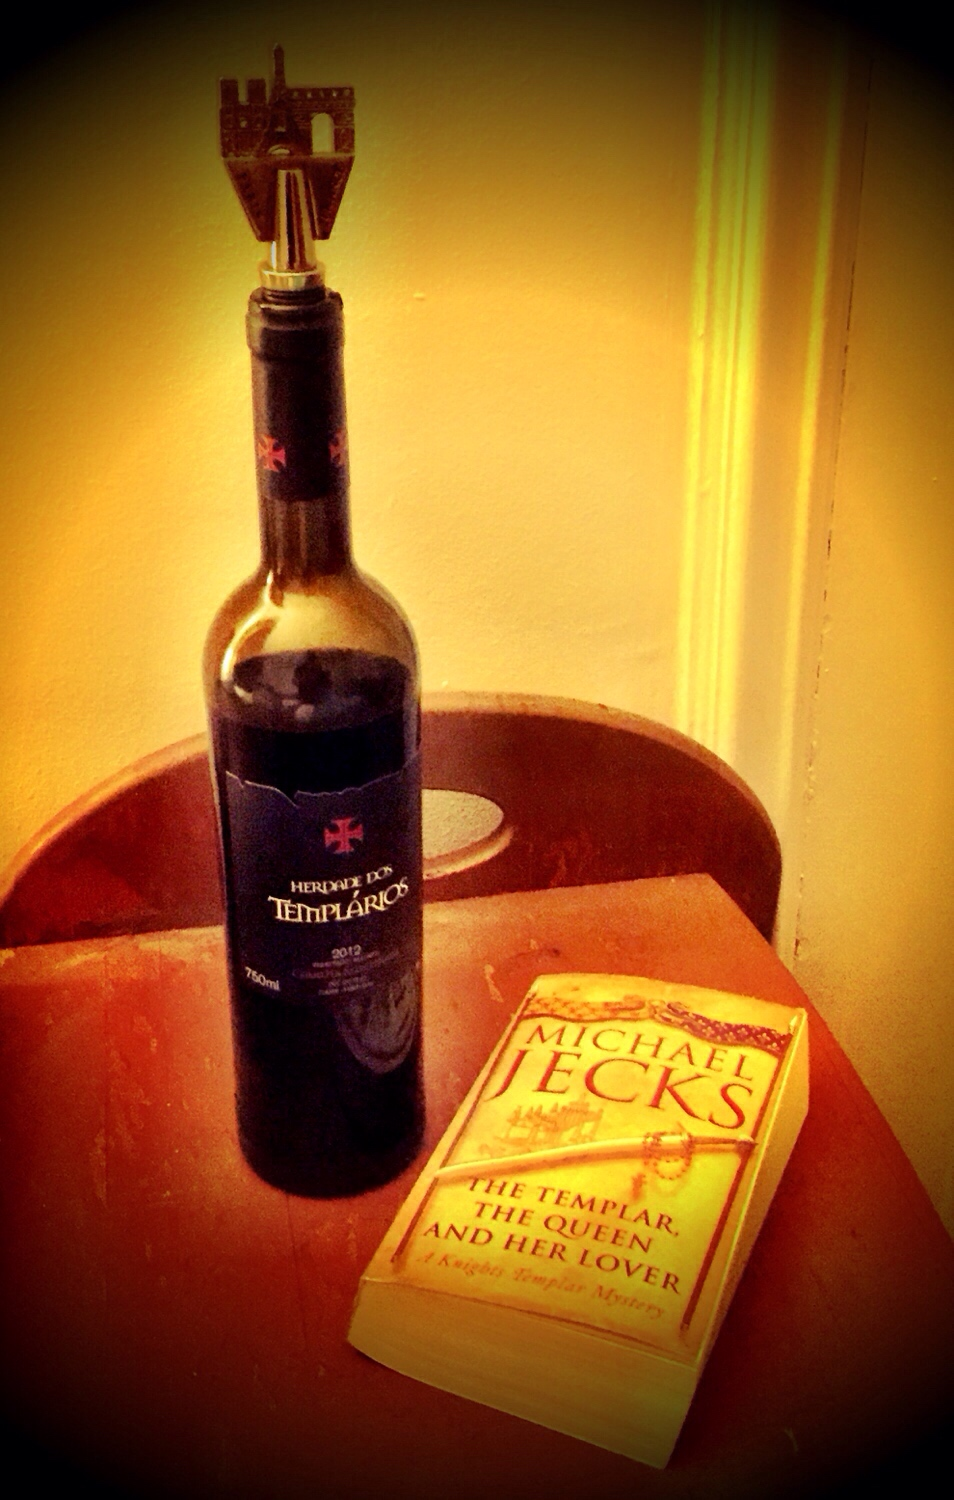 Friday Night: A Little Templar with My Wine